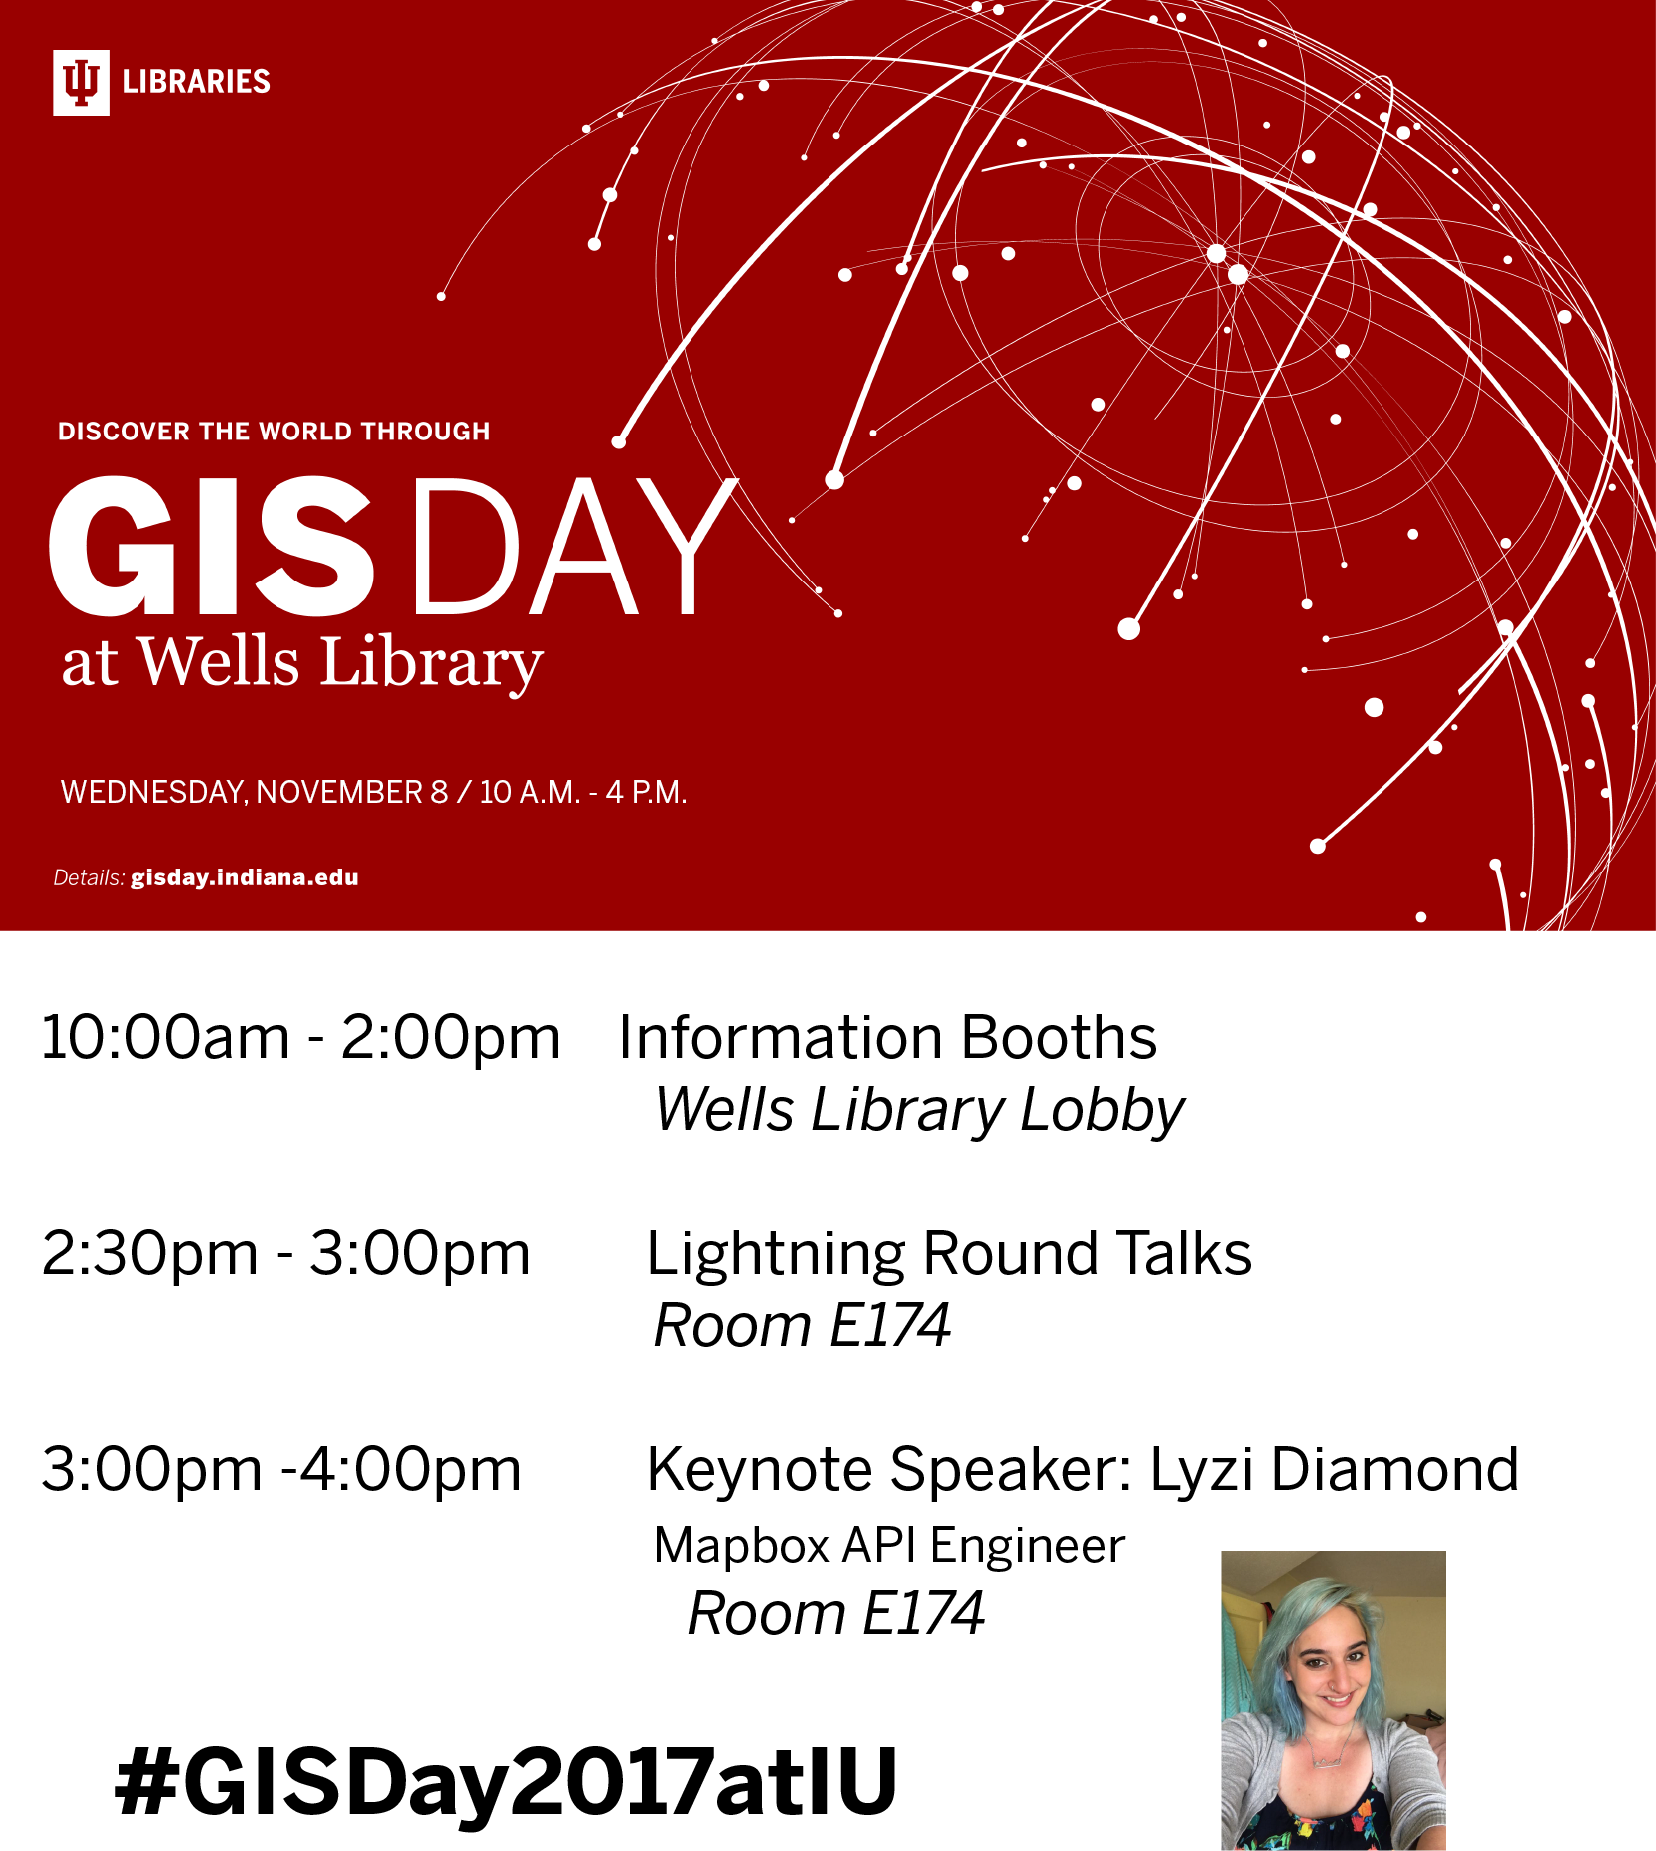 10am-2pm Information booths in Wells Library Lobby. 2:30pm Lightning Round Sessions. 3pm Keynote speaker Lyzi Diamond